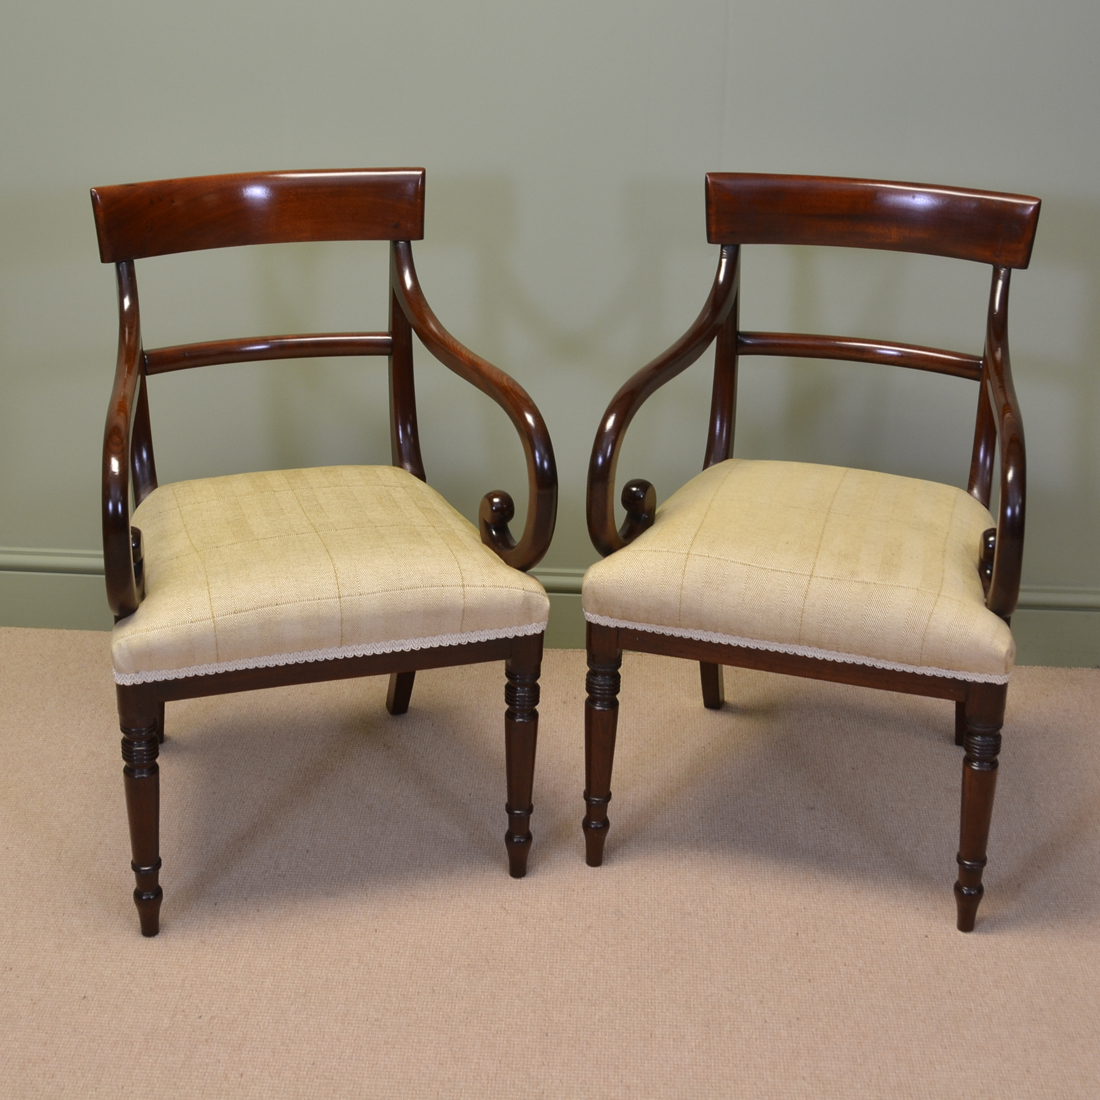 Elegant Chairs Elegant Pair Of Regency Mahogany Antique Desk Side